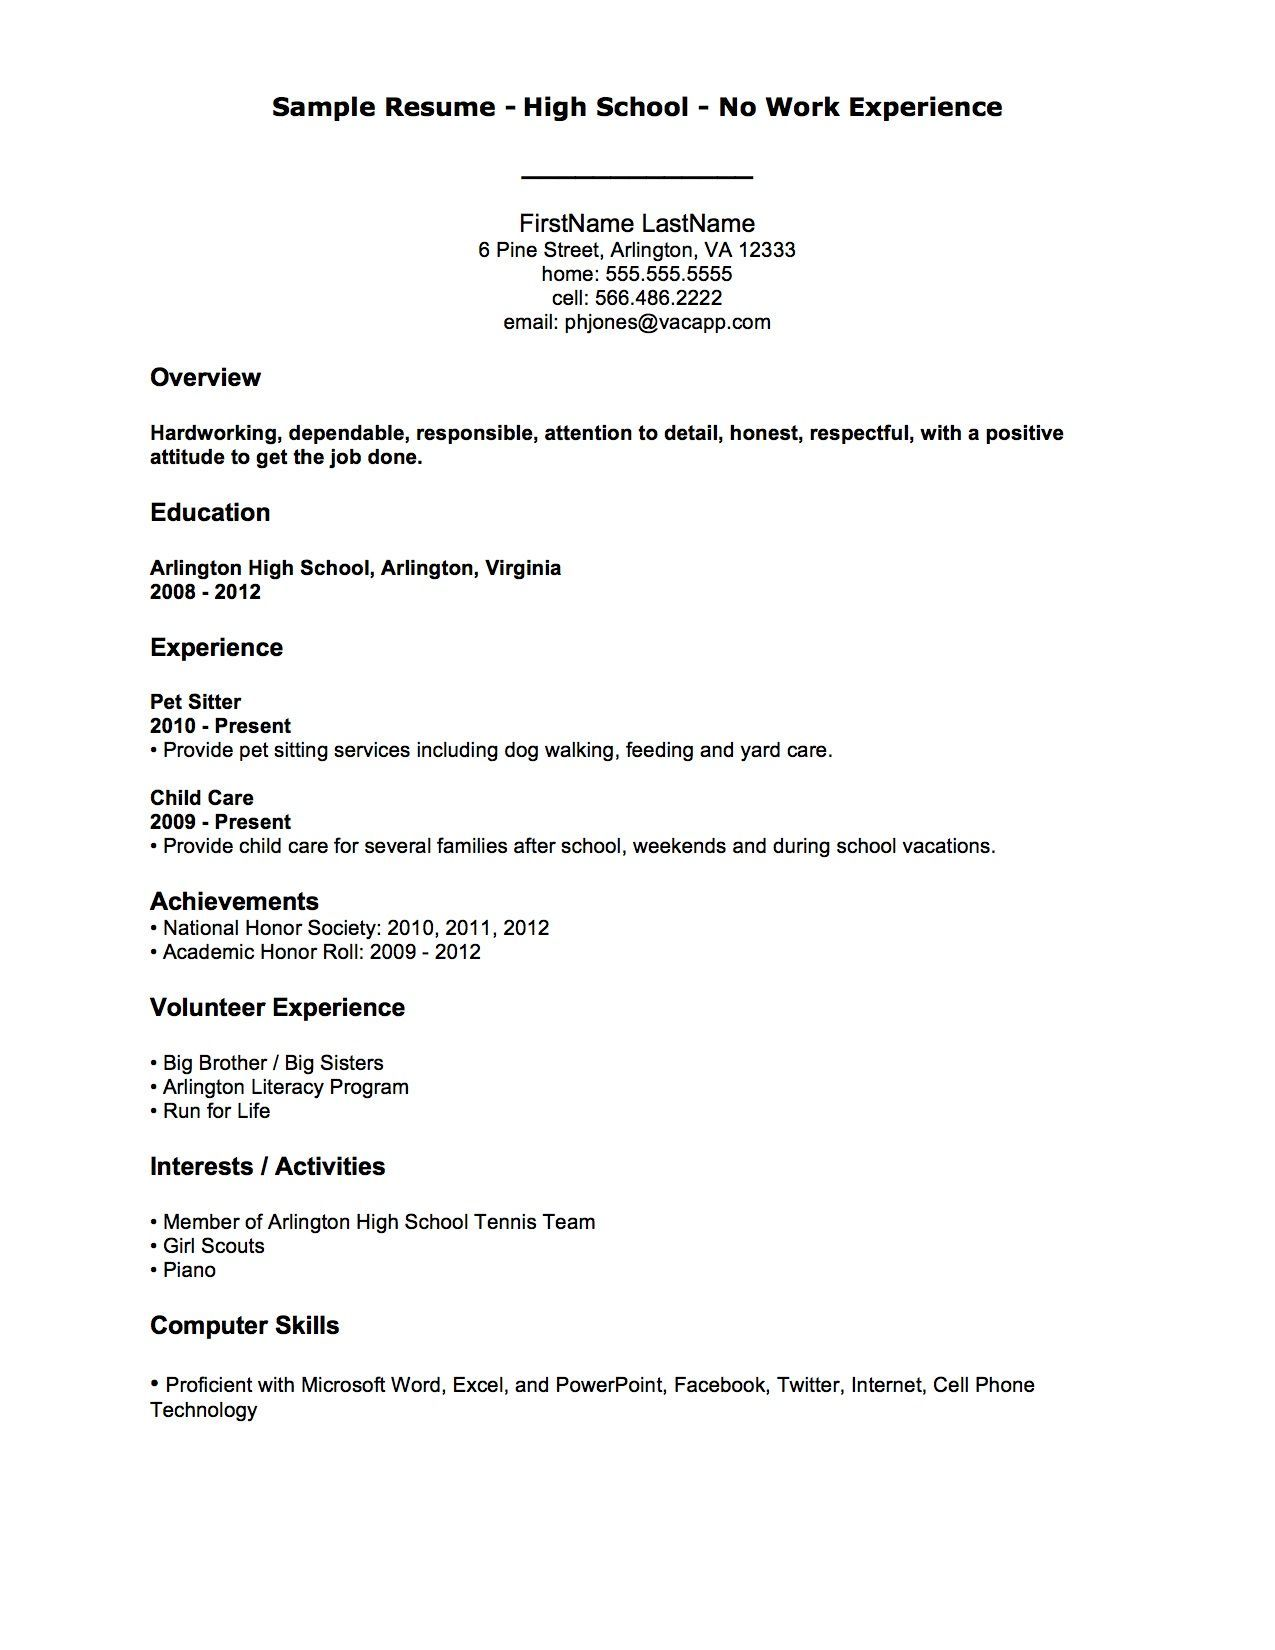 Resume Examples Job Experience First job resume, Job